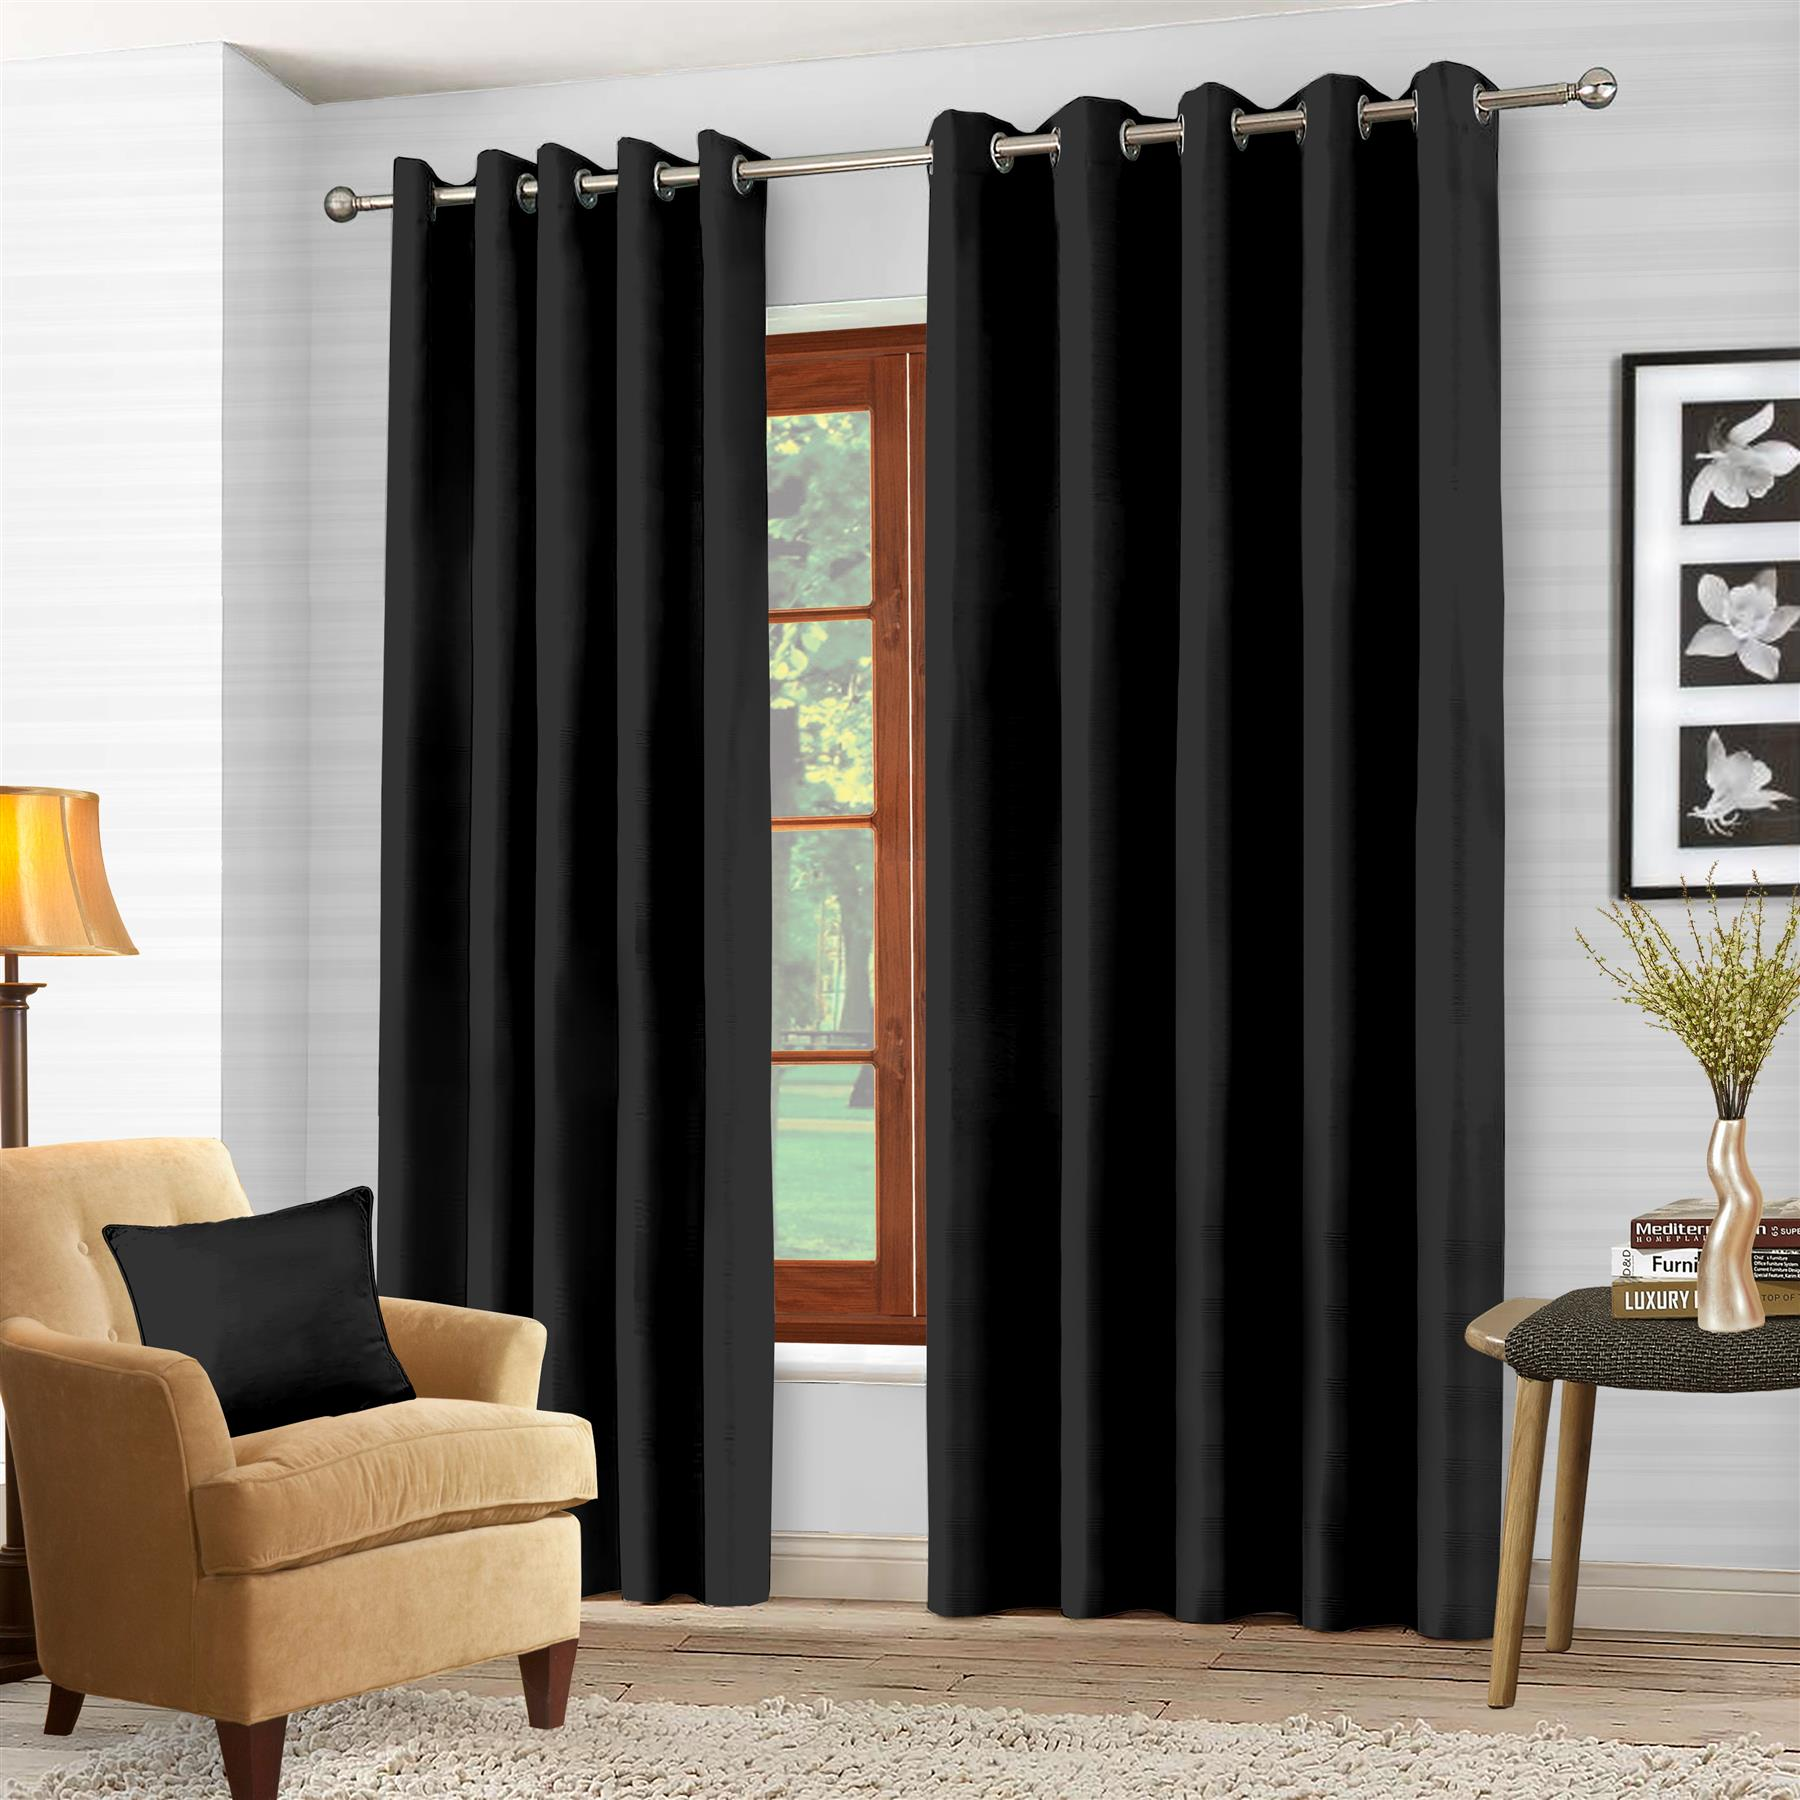 Luxury-Thermal-Blackout-Eyelet-Ring-Top-Curtains-Pair-with-tie-backs thumbnail 4